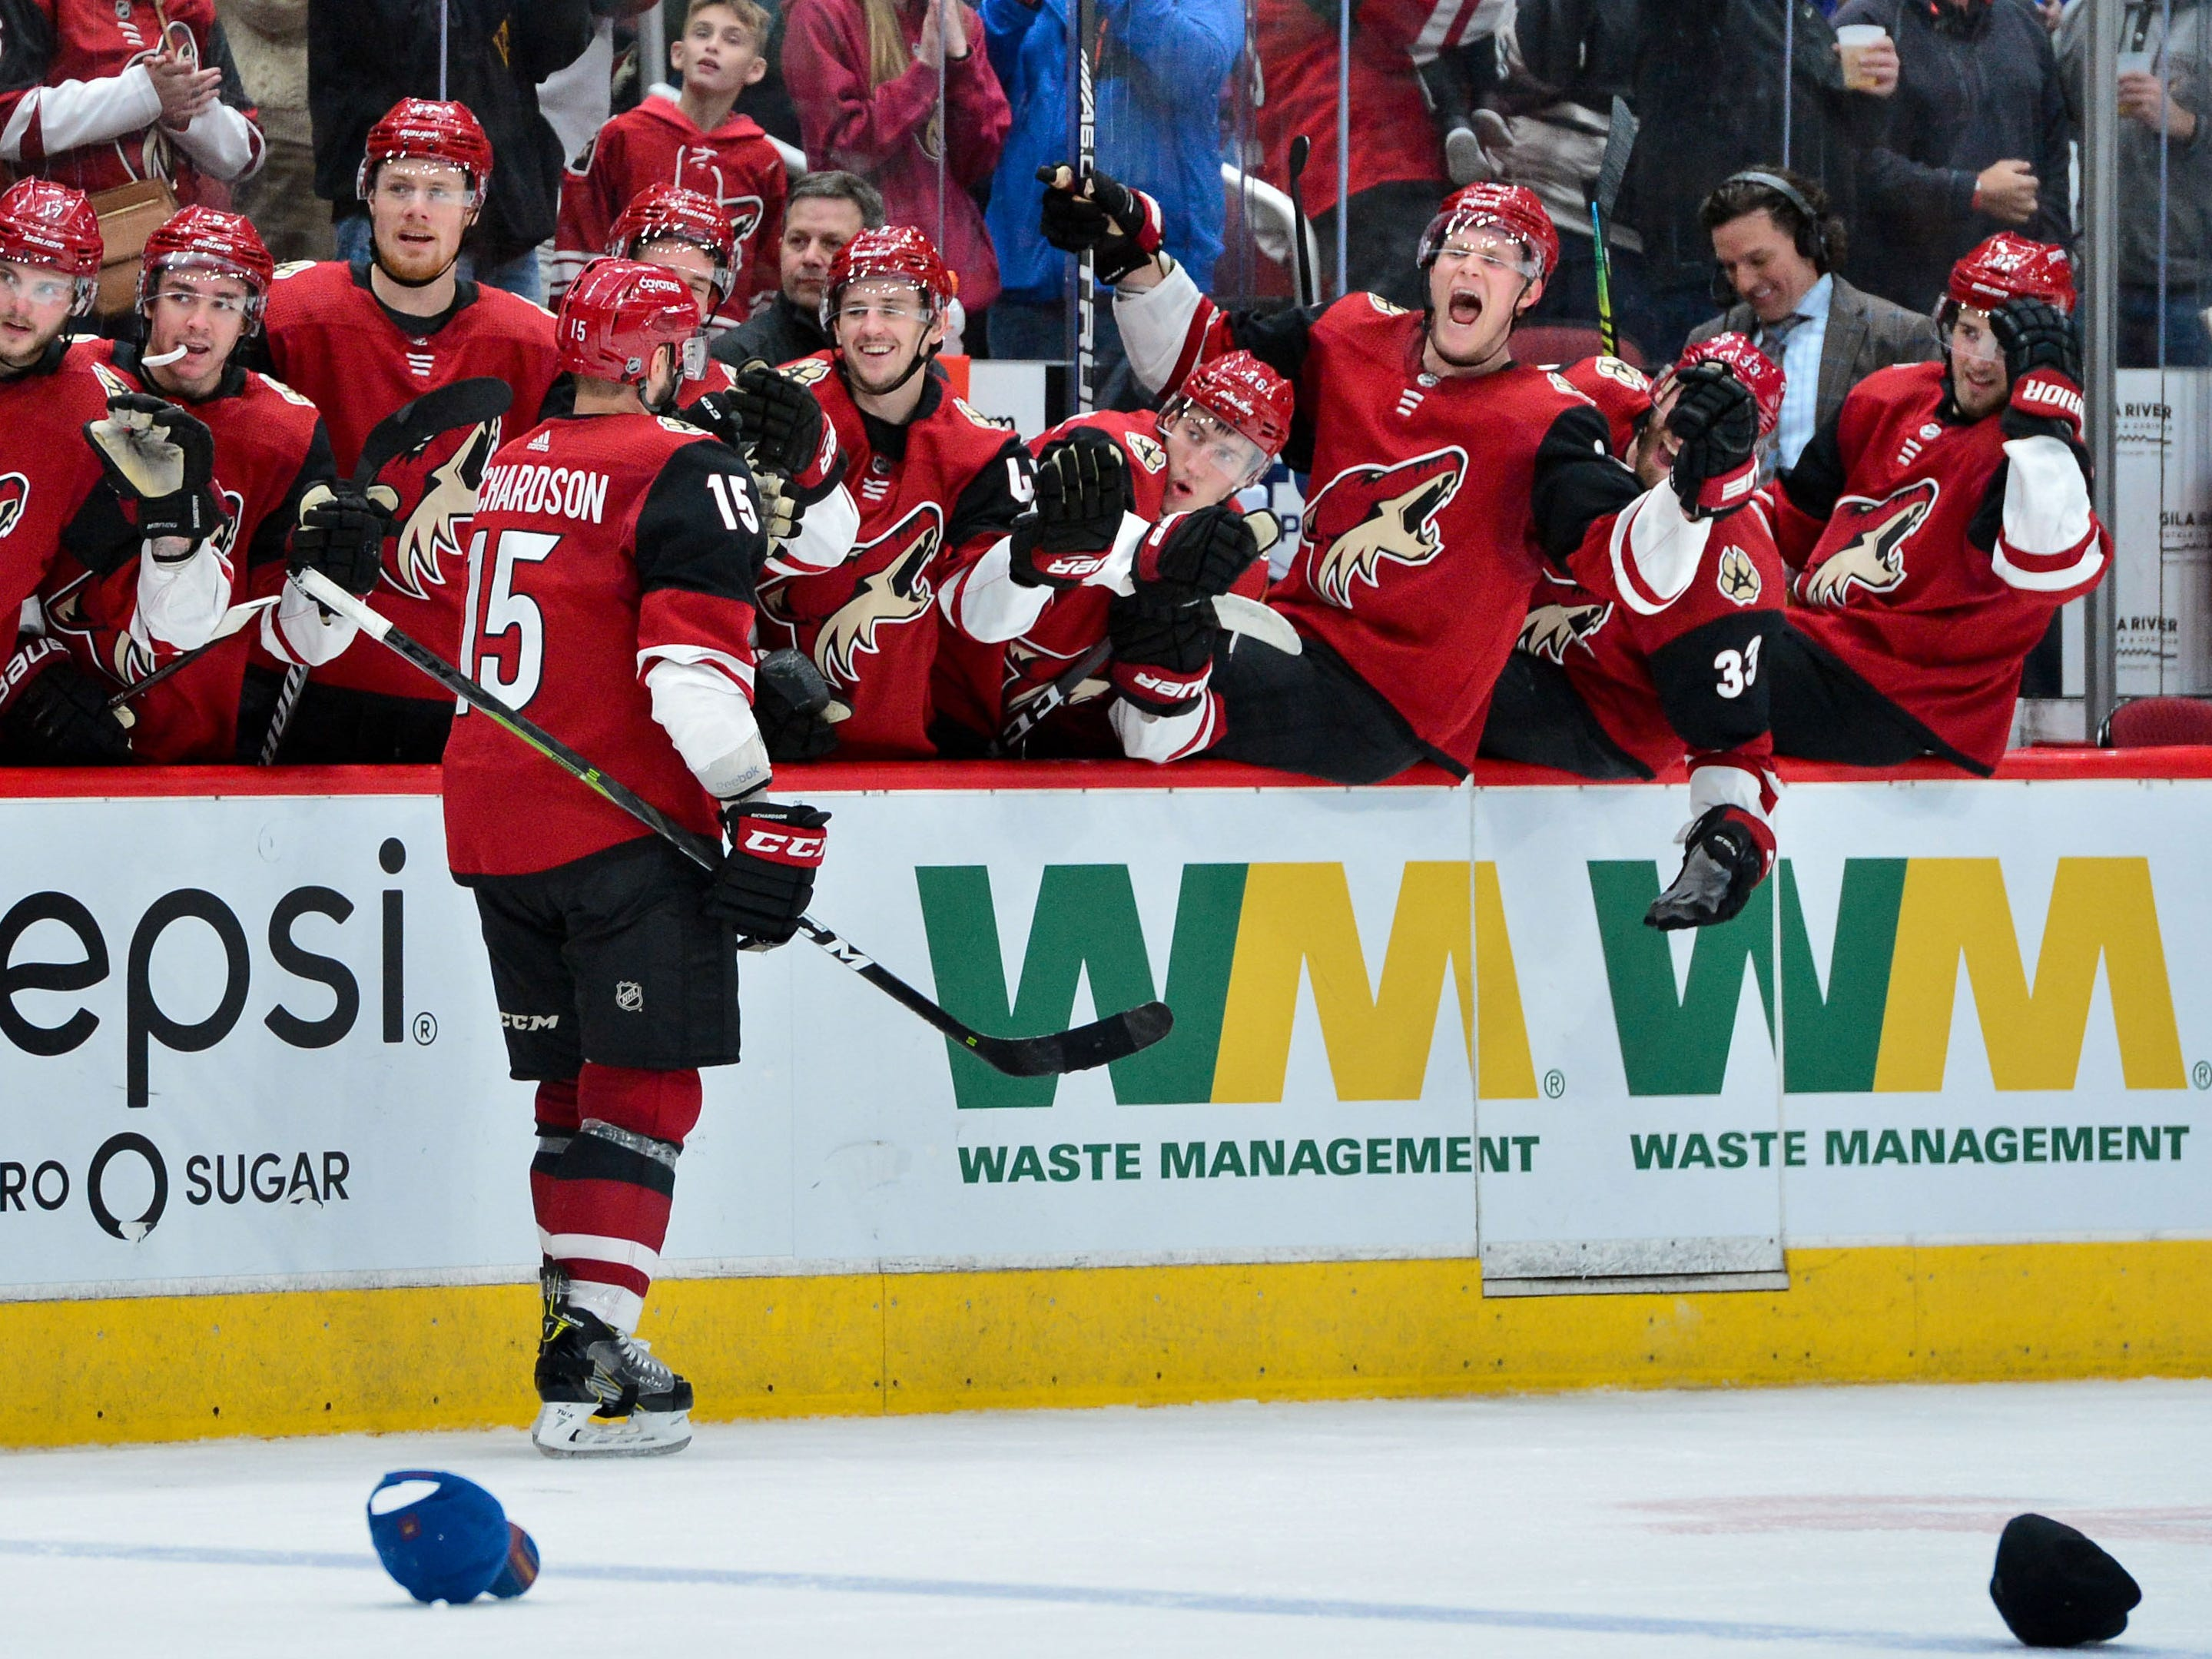 Feb 28, 2019; Glendale, AZ, USA; Arizona Coyotes center Brad Richardson (15) celebrates with teammates after scoring his third goal on the game during the second period at Gila River Arena.